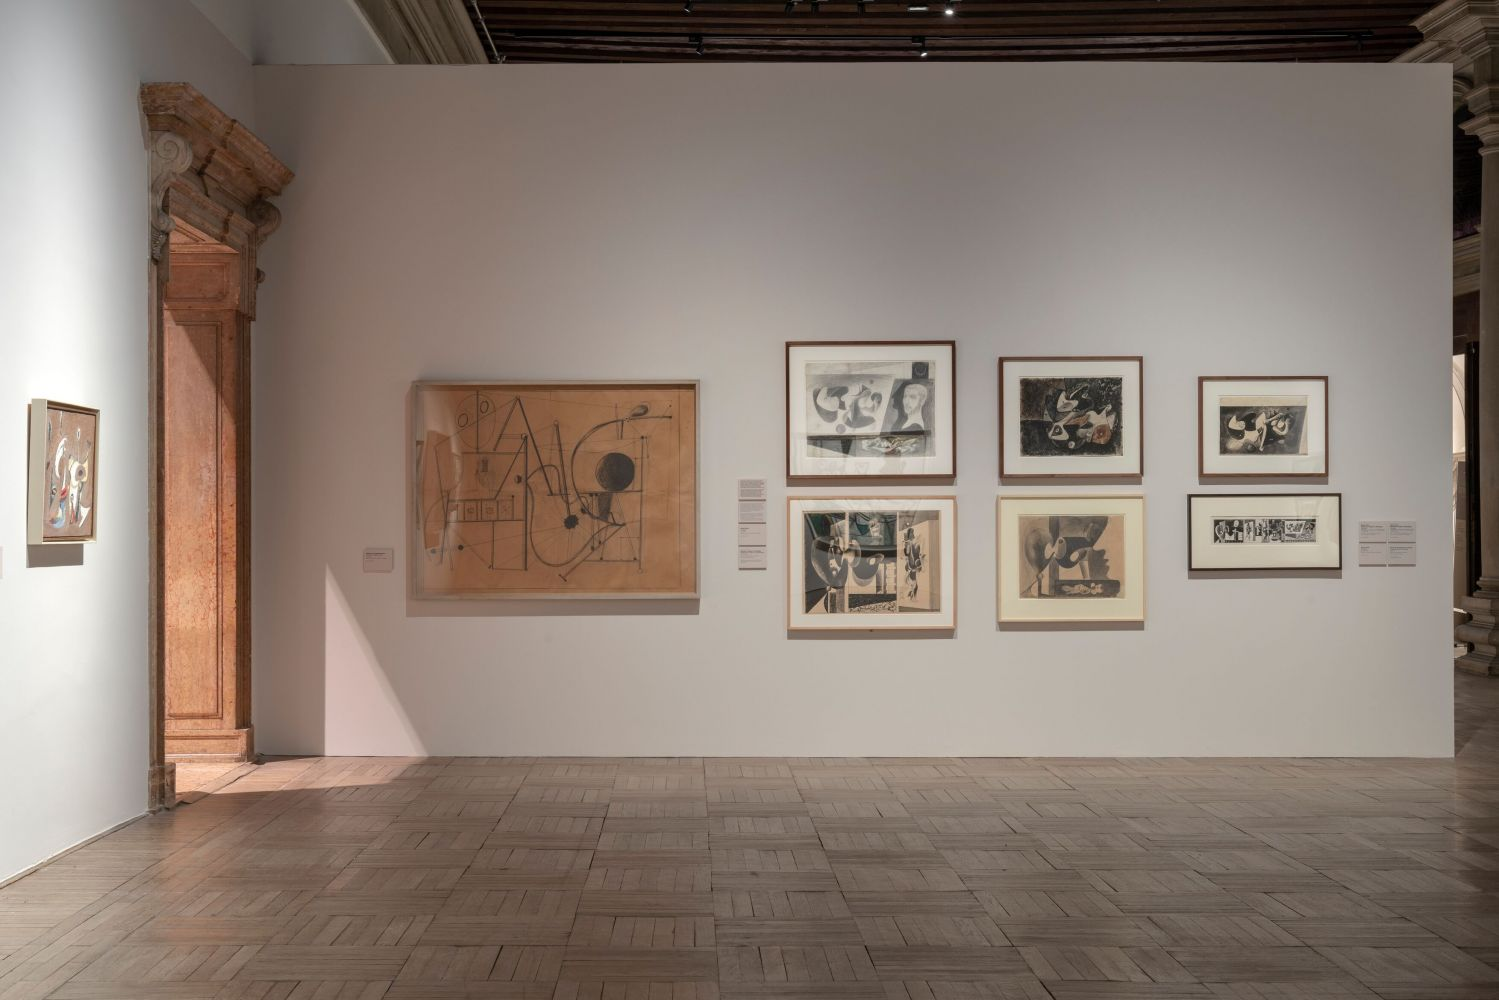 Installation photograph showing drawings by Gorky from the early 1930s